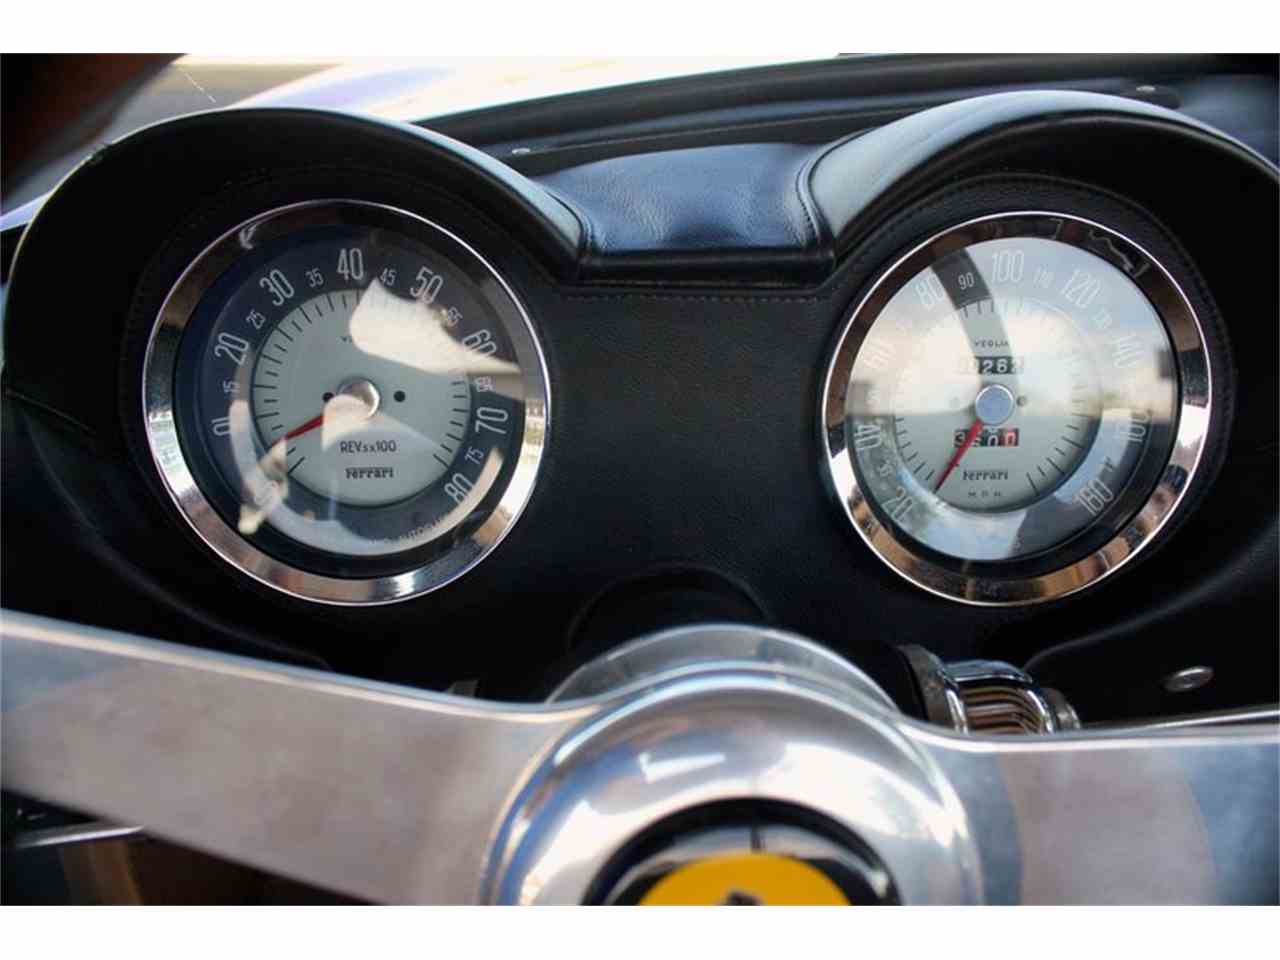 Large Picture of Classic 1963 Ferrari 250 GTE California Spyder located in Arizona Auction Vehicle - J2E5